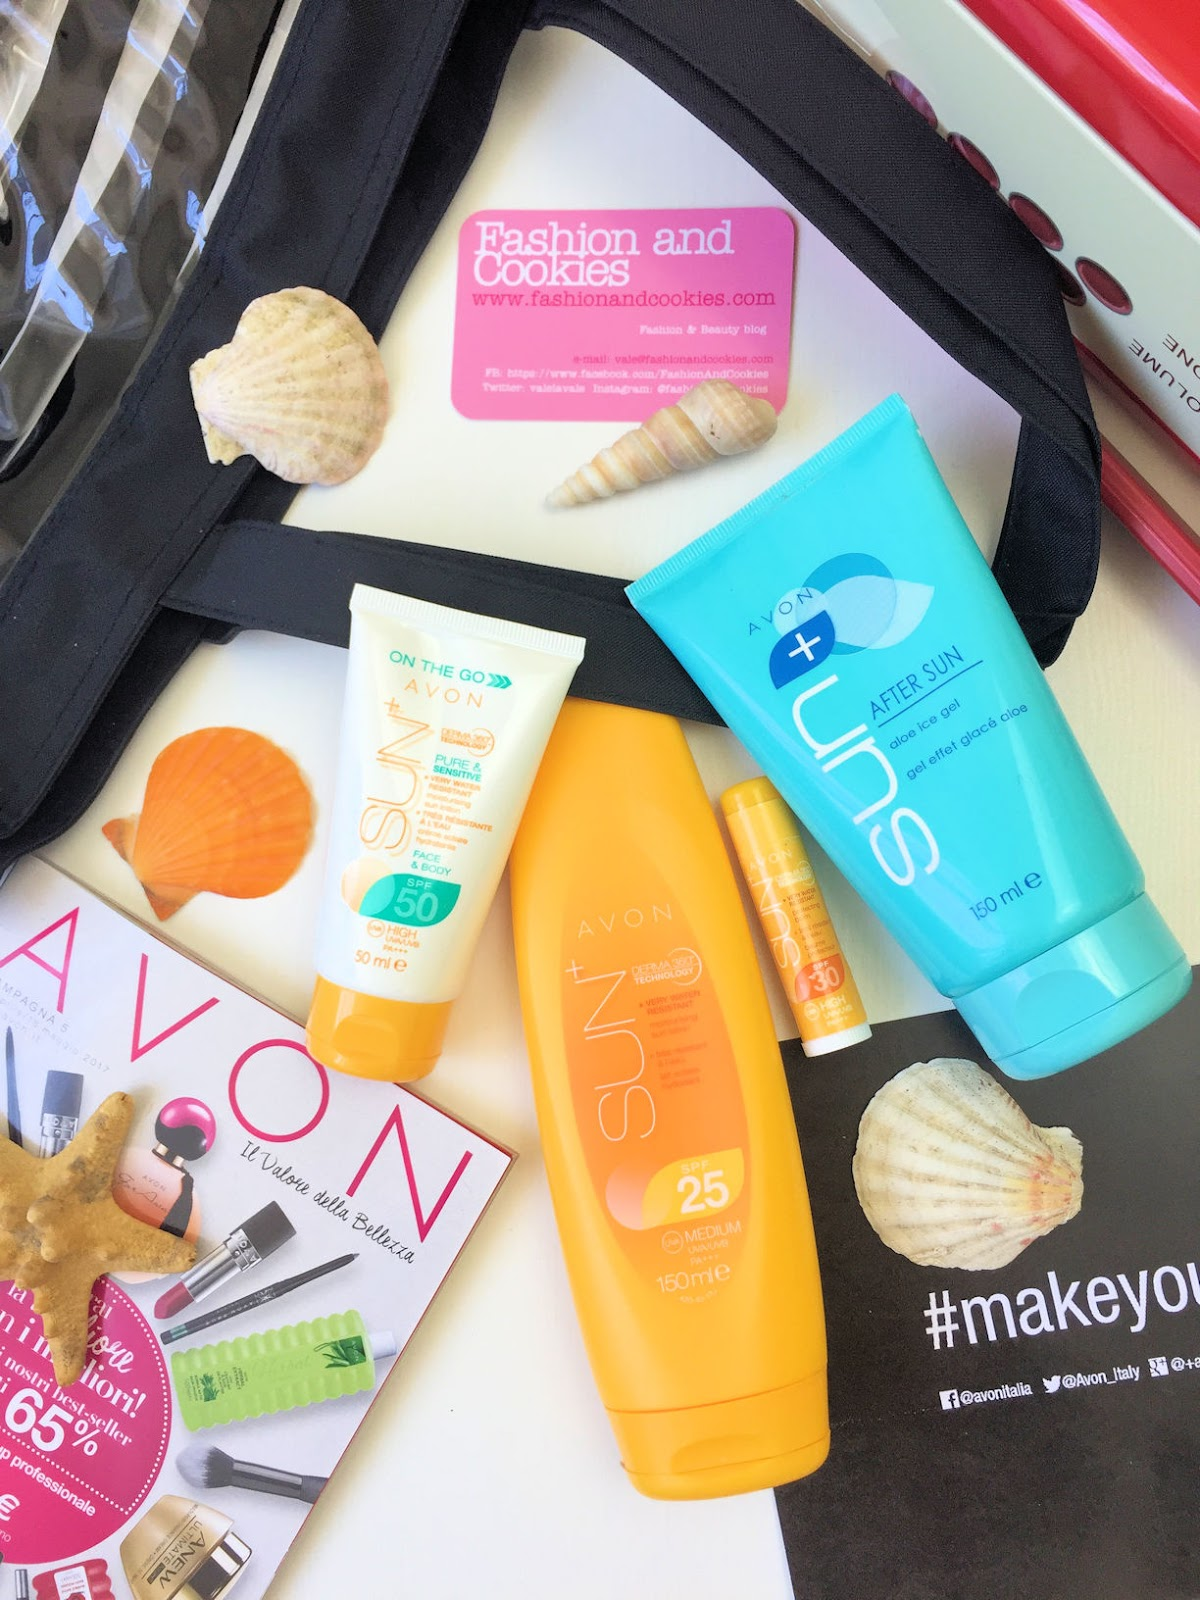 Come proteggere la pelle al mare: recensione solari AVON SUN+ su Fashion and Cookies beauty blog, beauty blogger